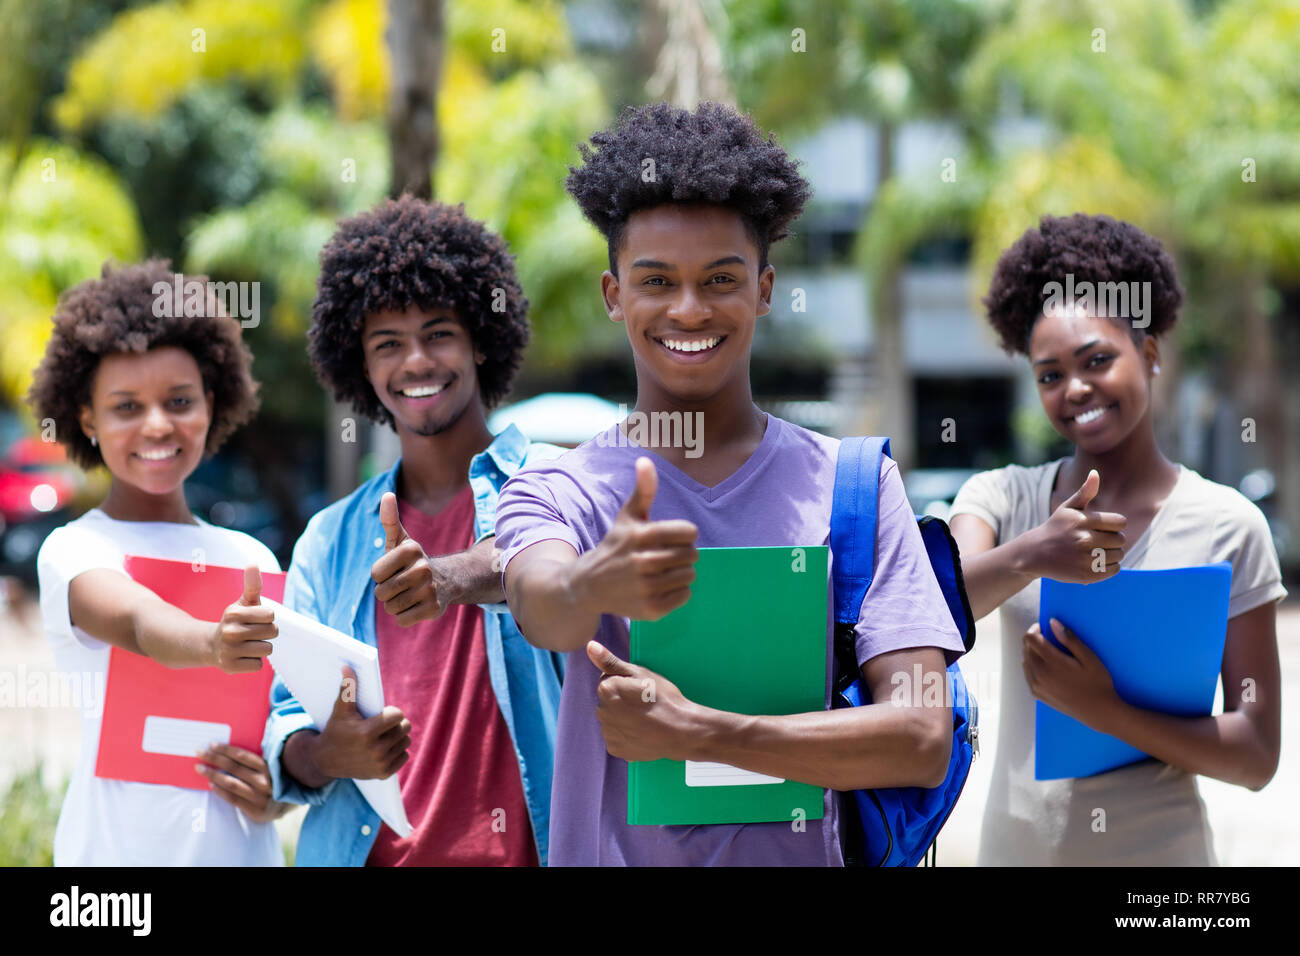 Successful african male student with group of african american students outdoor in the summer - Stock Image